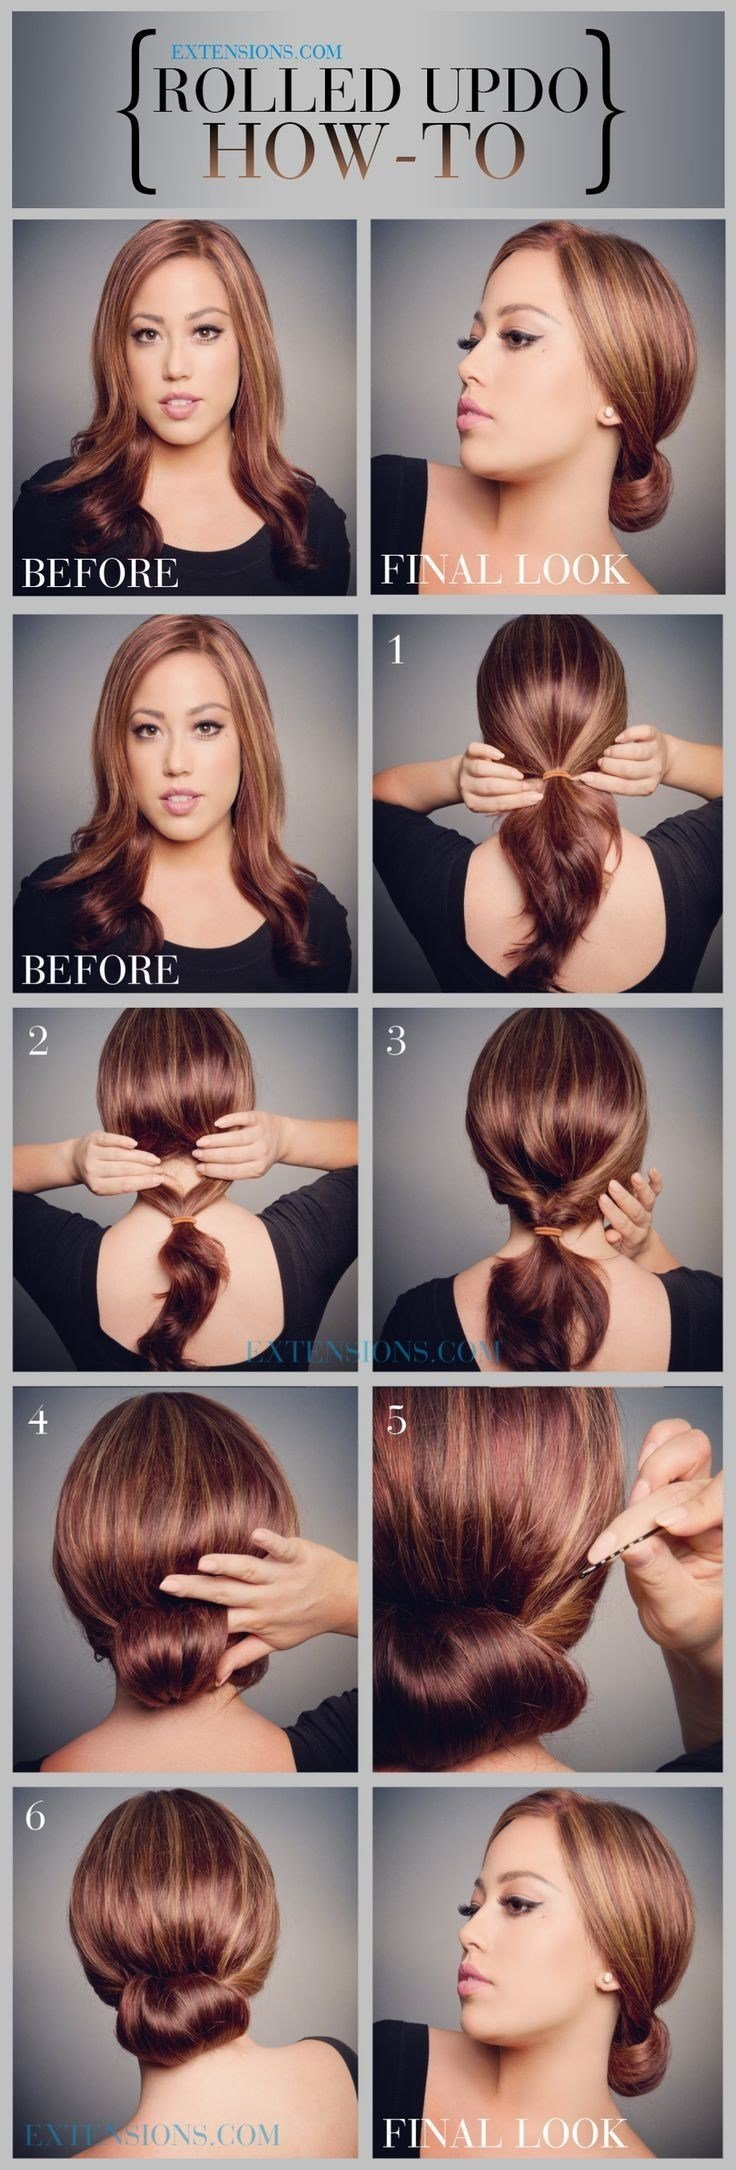 The Best 12 Trendy Low Bun Updo Hairstyles Tutorials Easy Cute Popular Haircuts Pictures